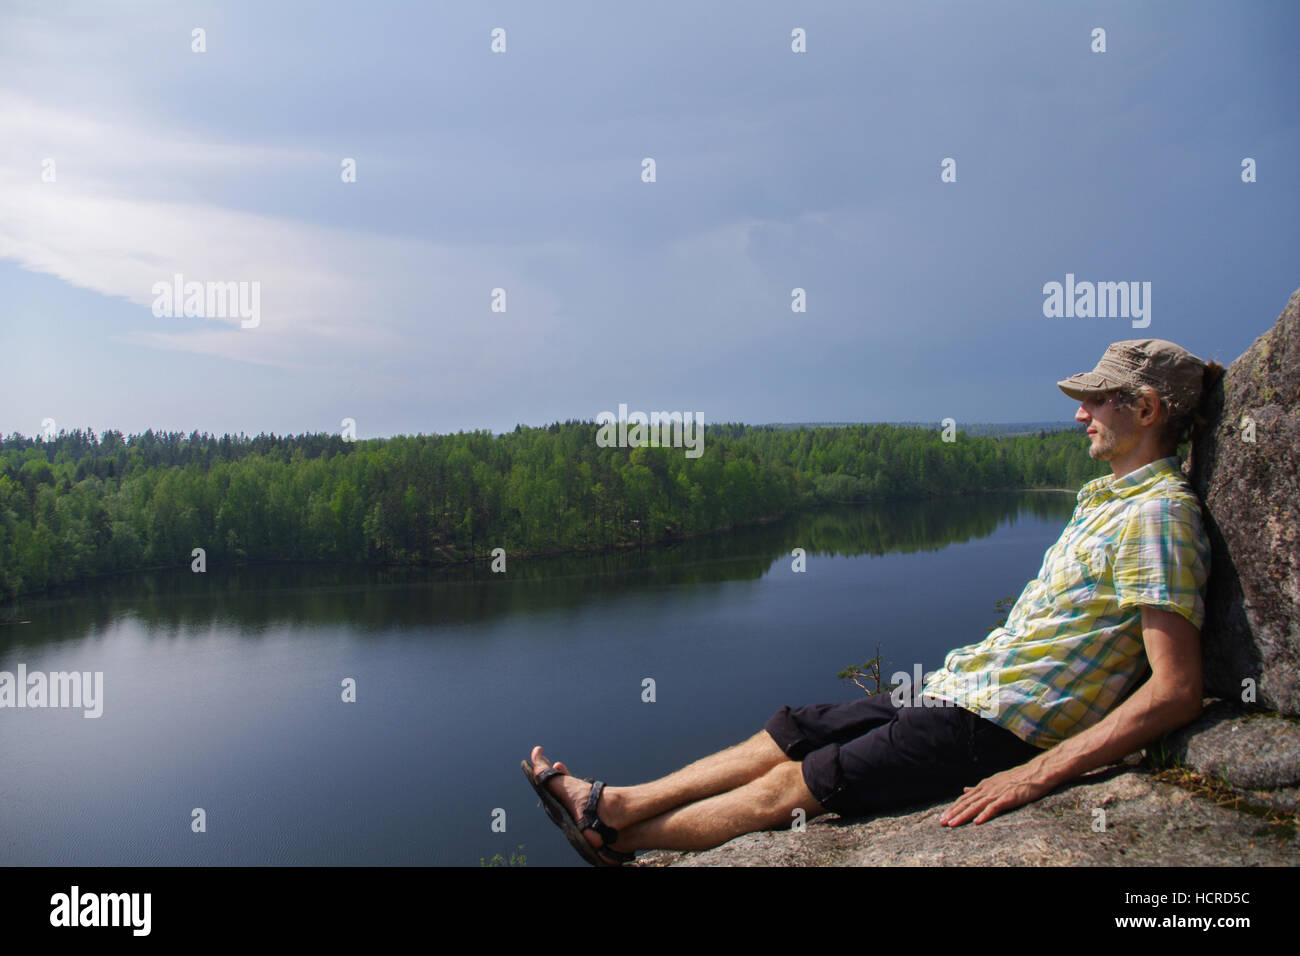 a happy young man sitting on a rocky slope above a lake - Stock Image